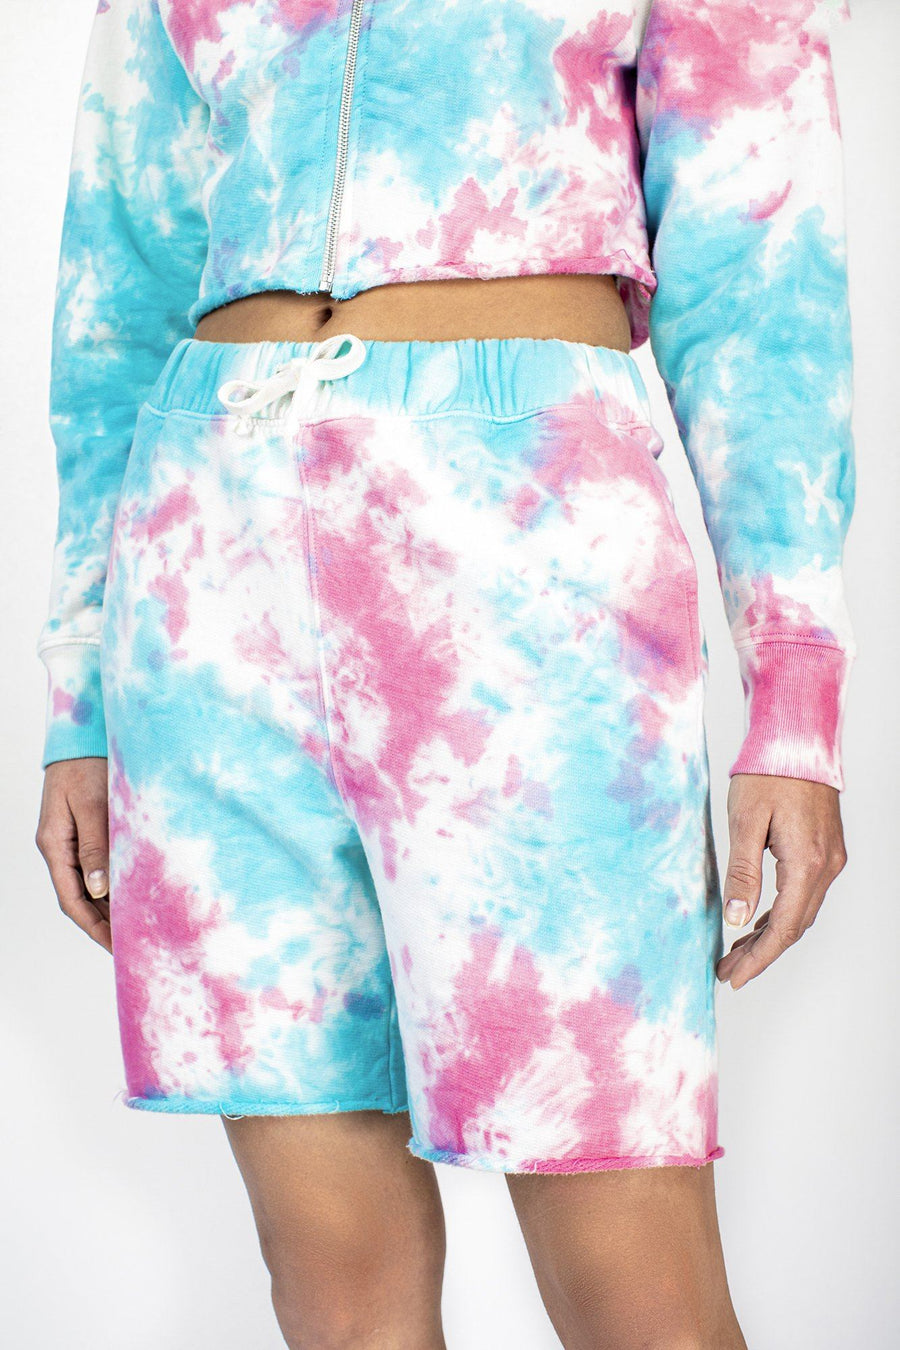 Cotton Candy Tie Dye Sweat Short